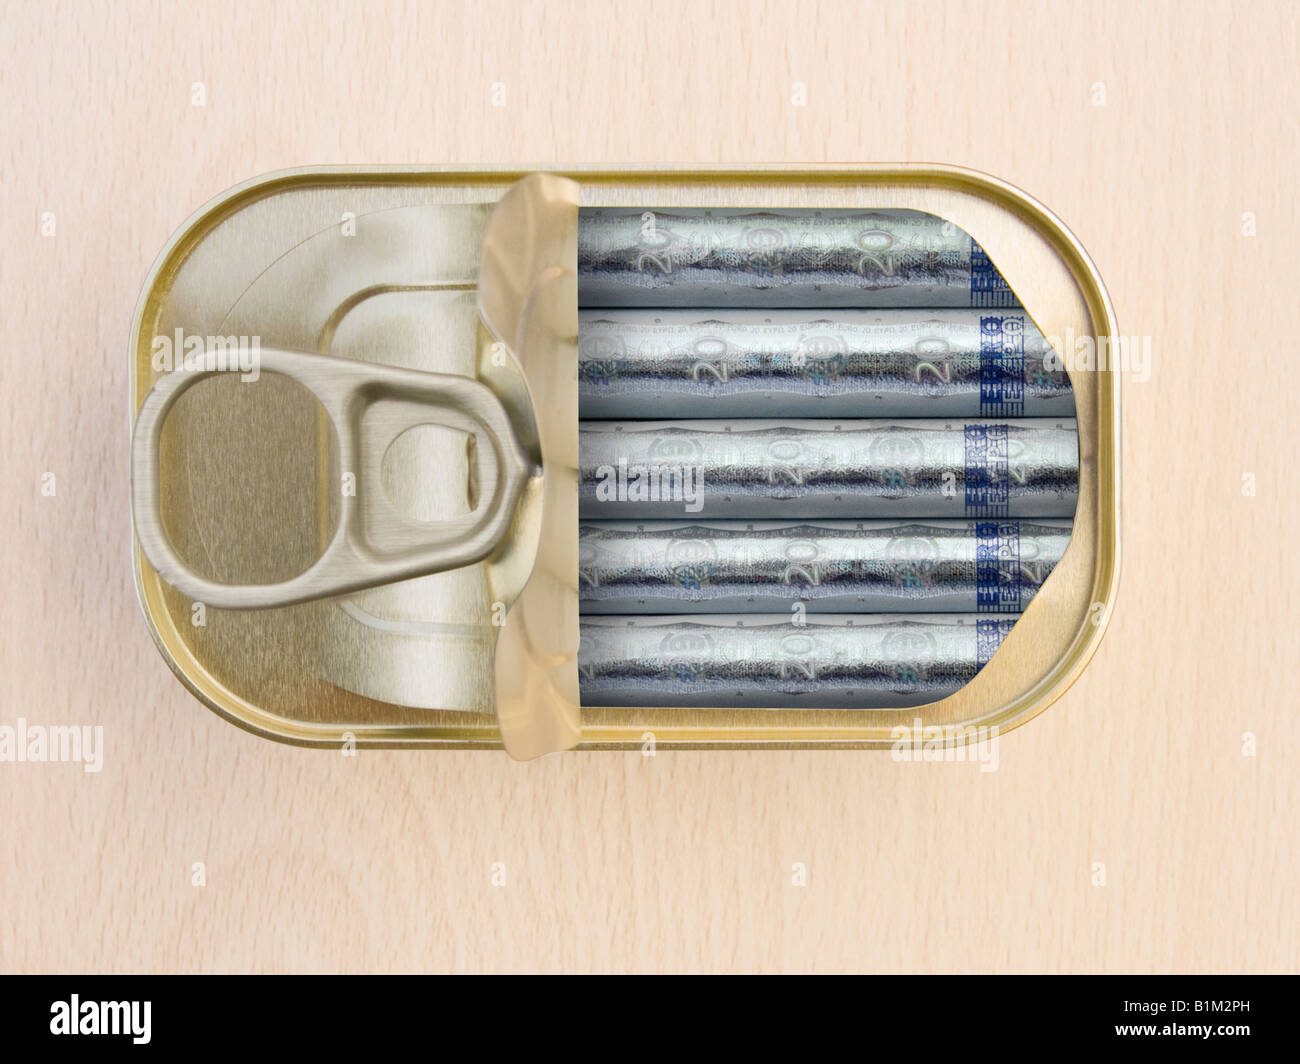 Plan view of a Ring Pull Tin containing rolled 20 Euro notes on wooden surface - Concept Stock Photo